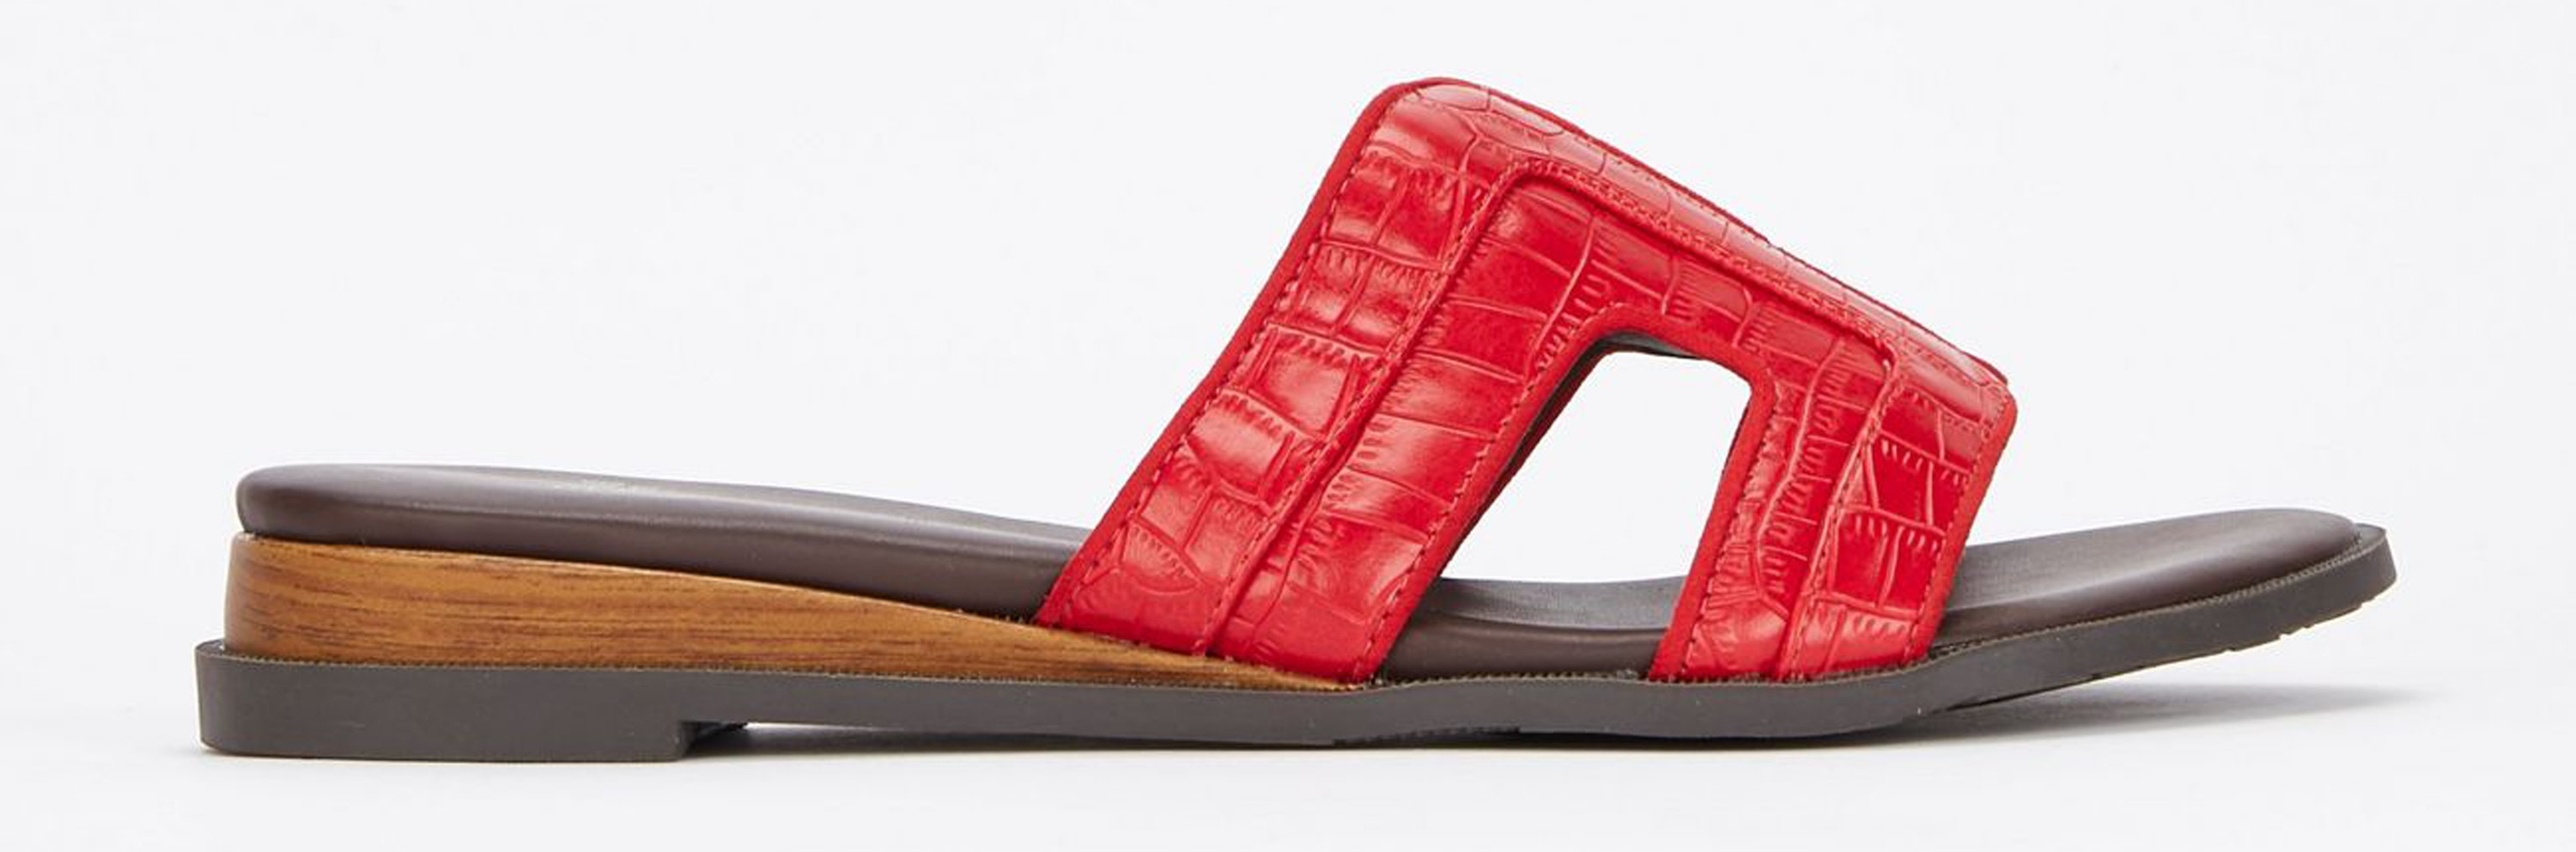 Evans Extra Wide Fit Red Mini Wedge Mules, currently reduced to £31.50/AED147.10